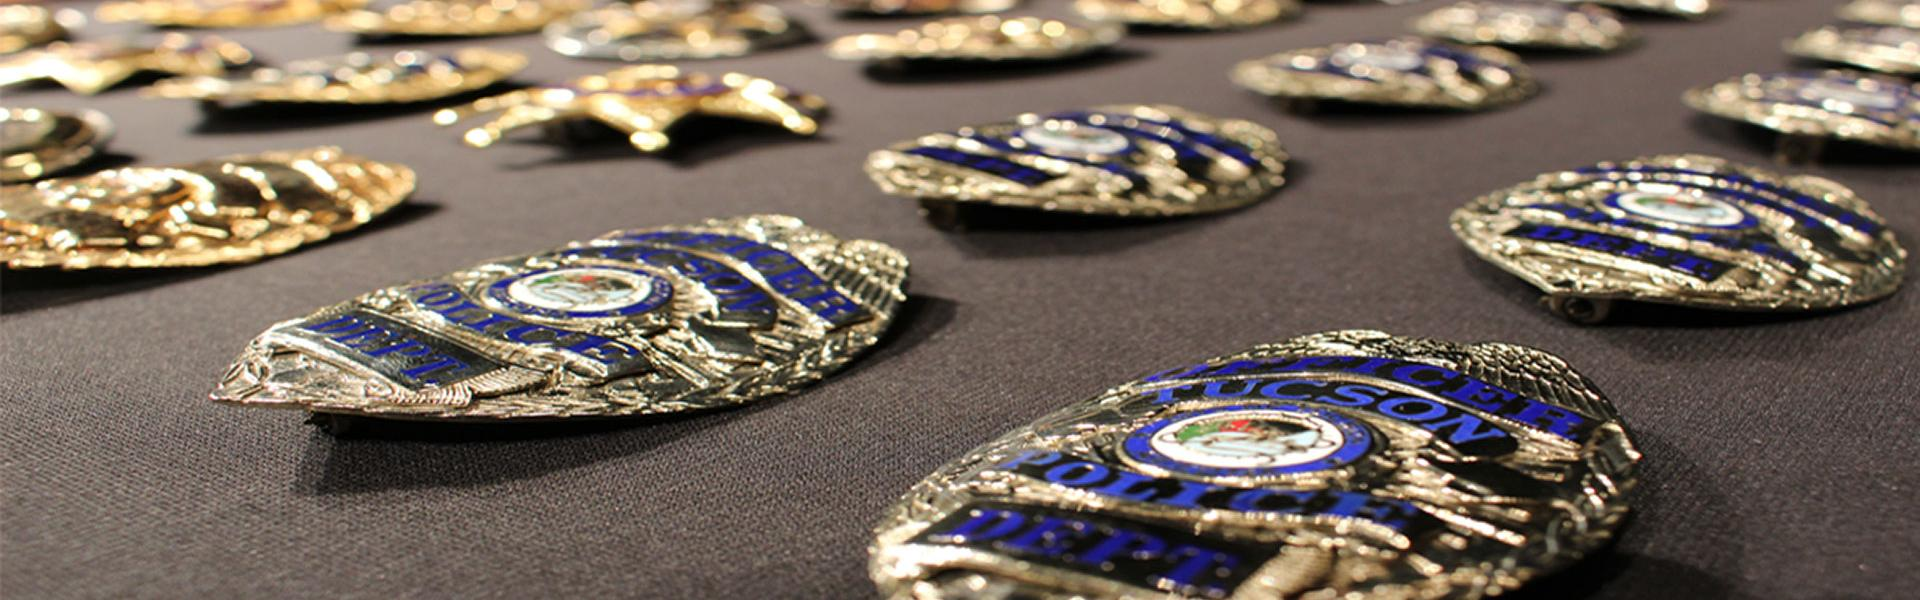 Photo of police badges